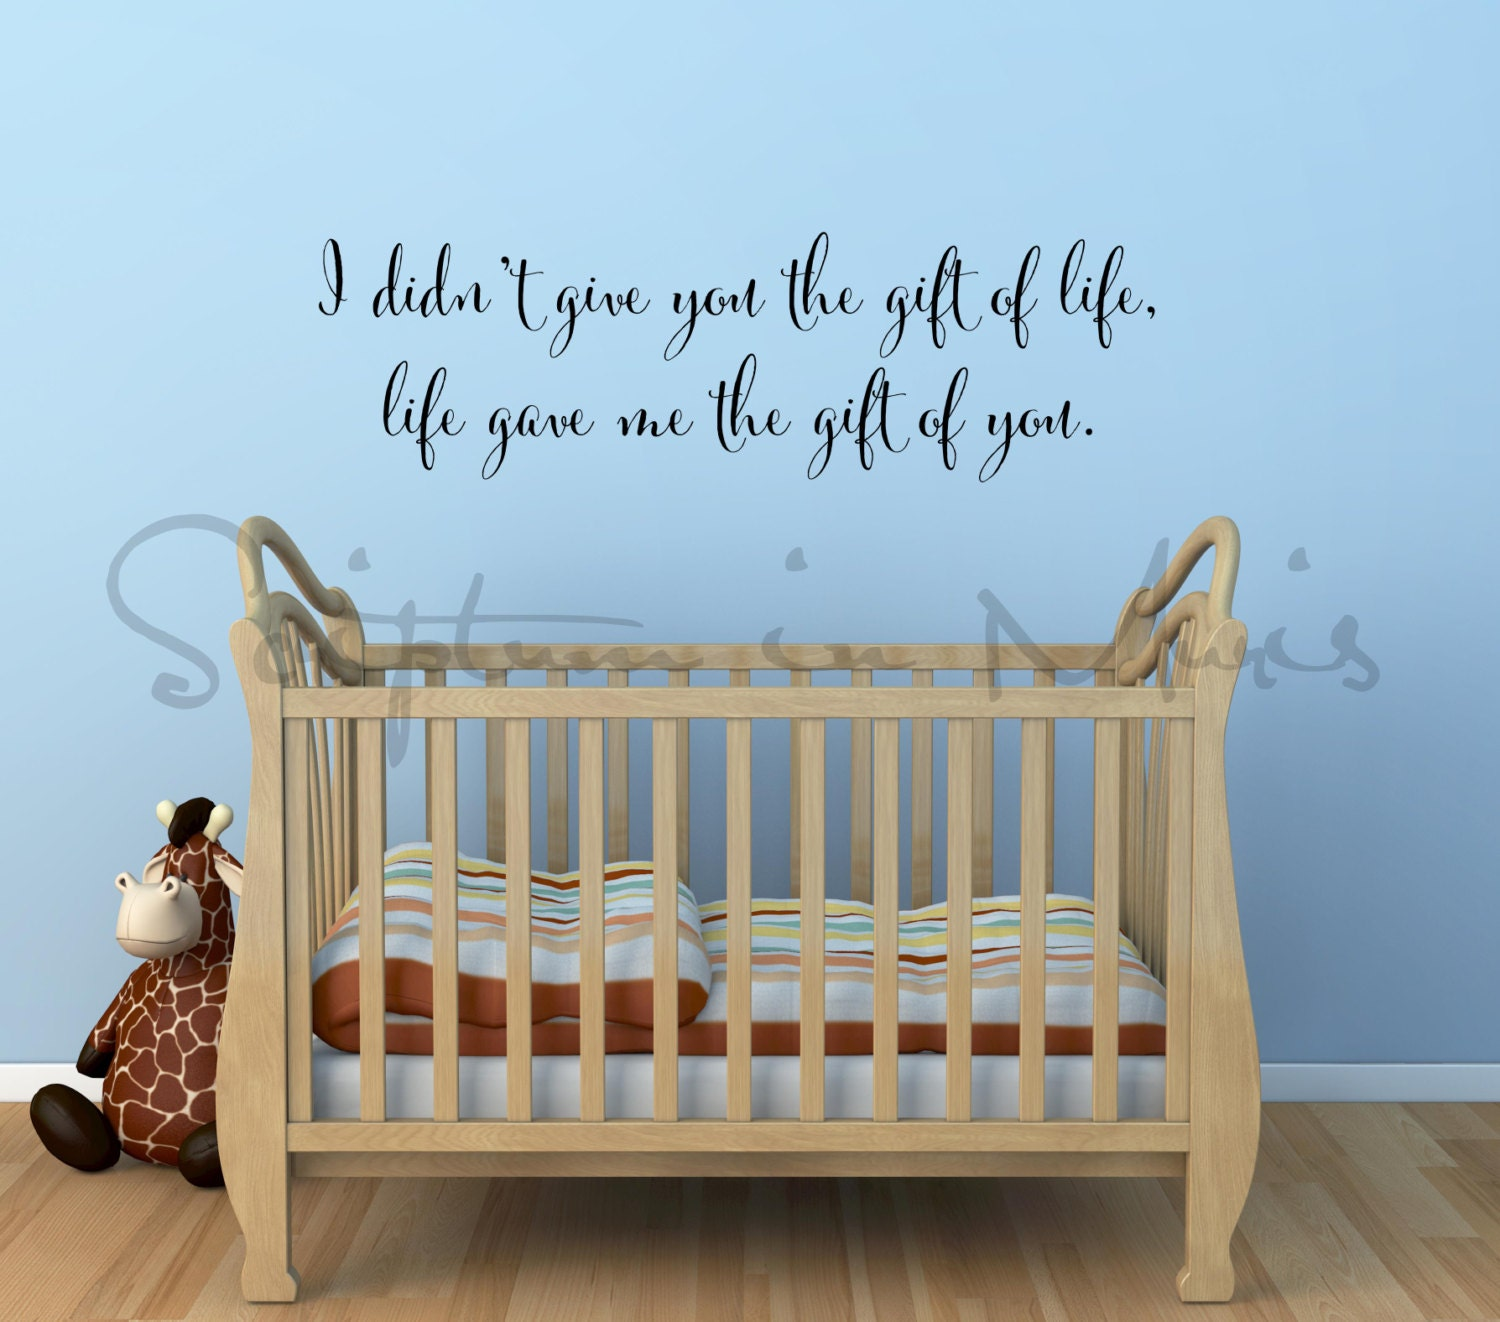 Adoption Quotes Endearing Adoption Quote I Didn't Give You The Gift Of Life Life